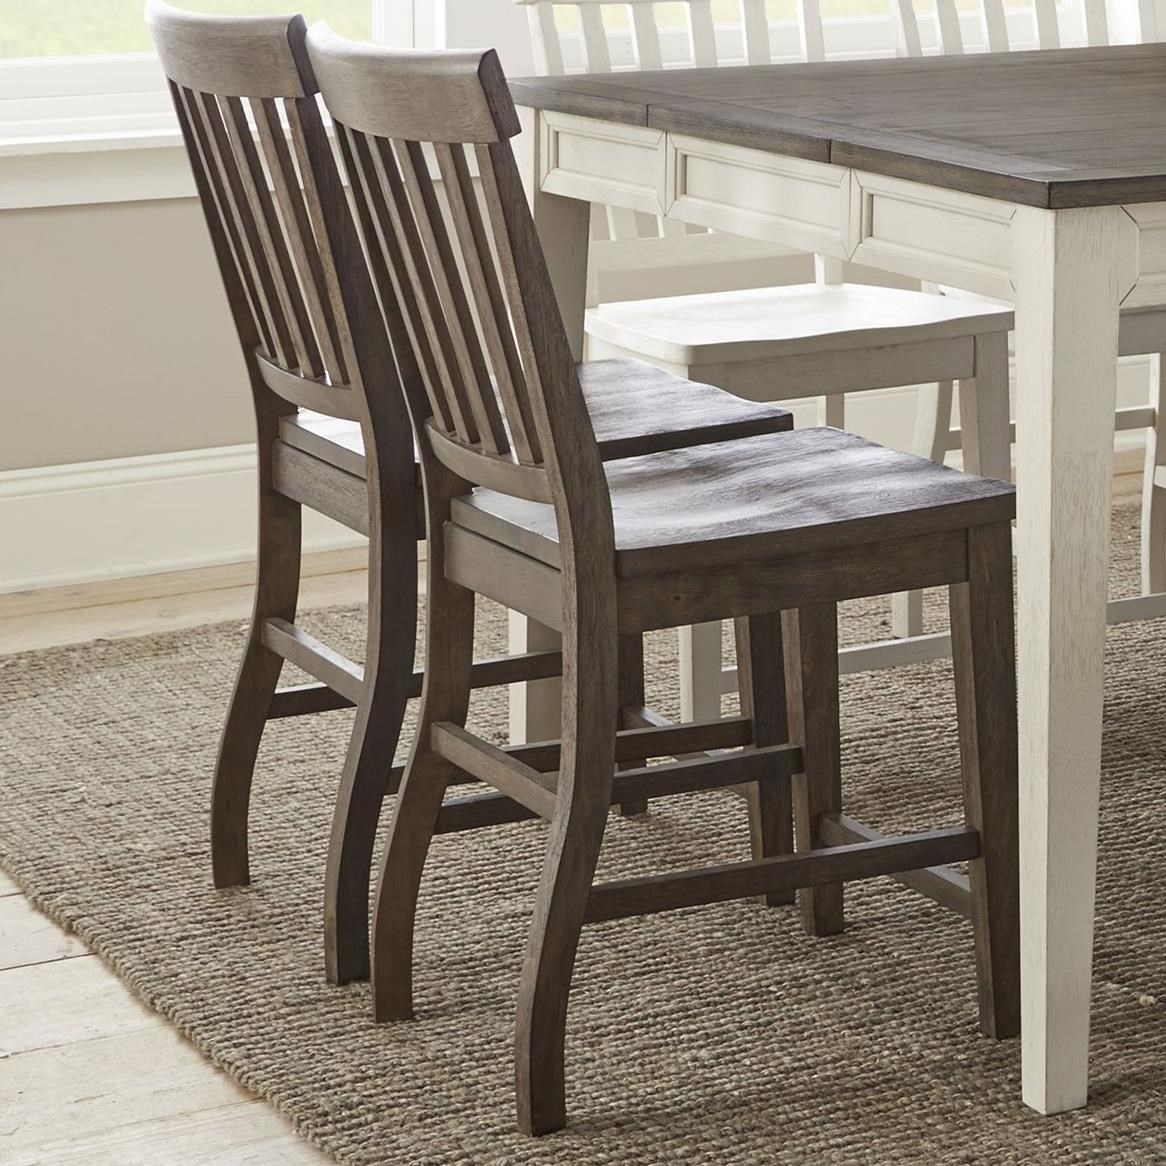 Cayla Side Chair by Steve Silver at Standard Furniture